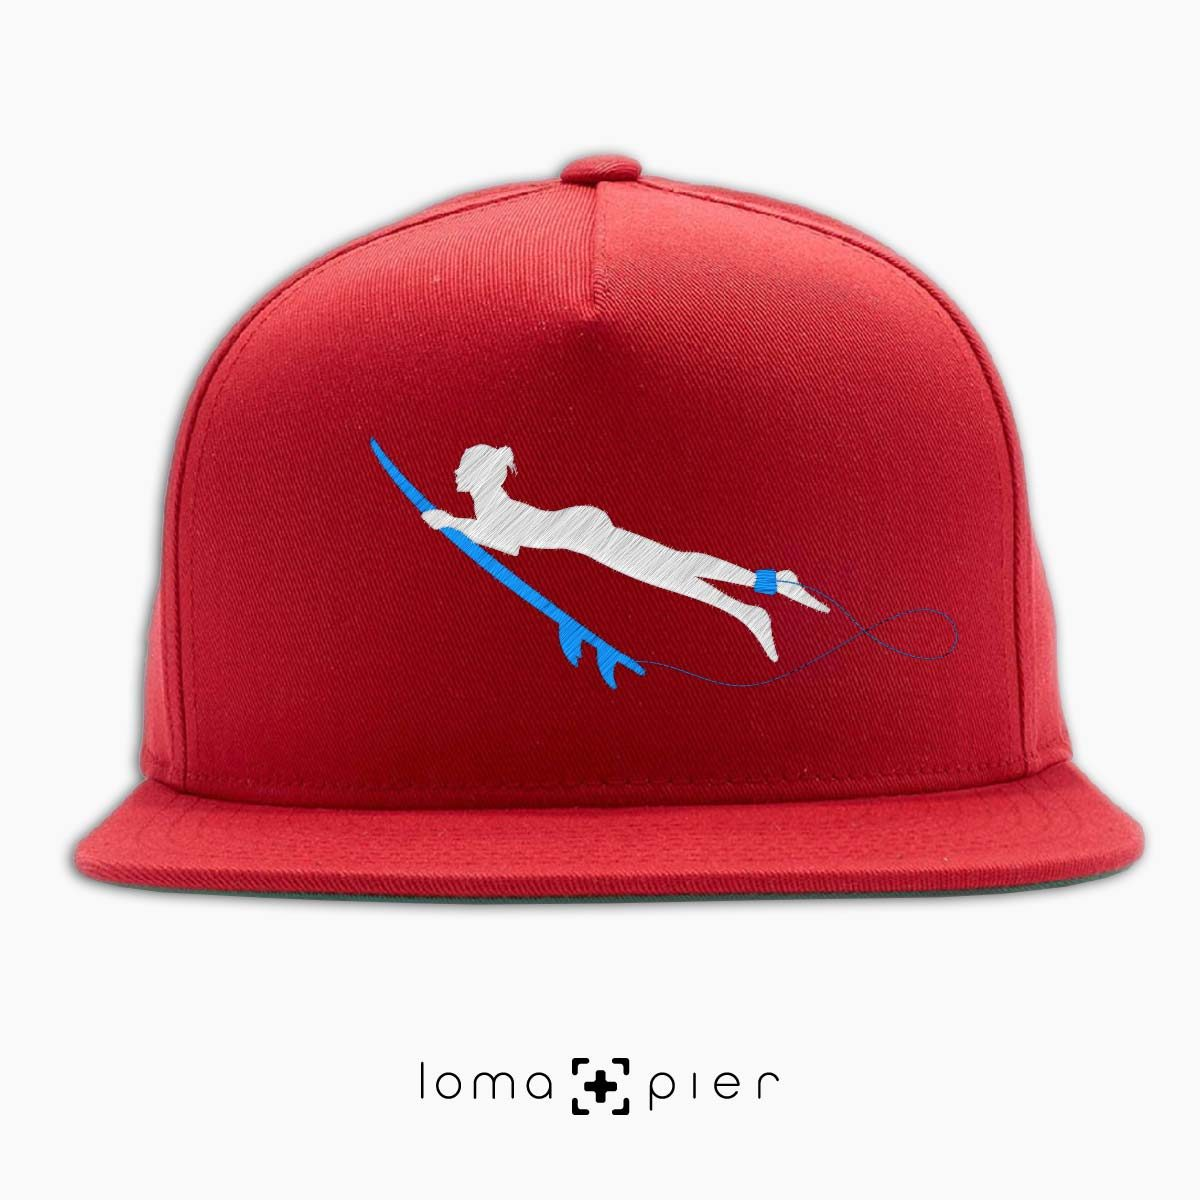 SURFING NAKED nude beach hat in red by loma+pier hat store